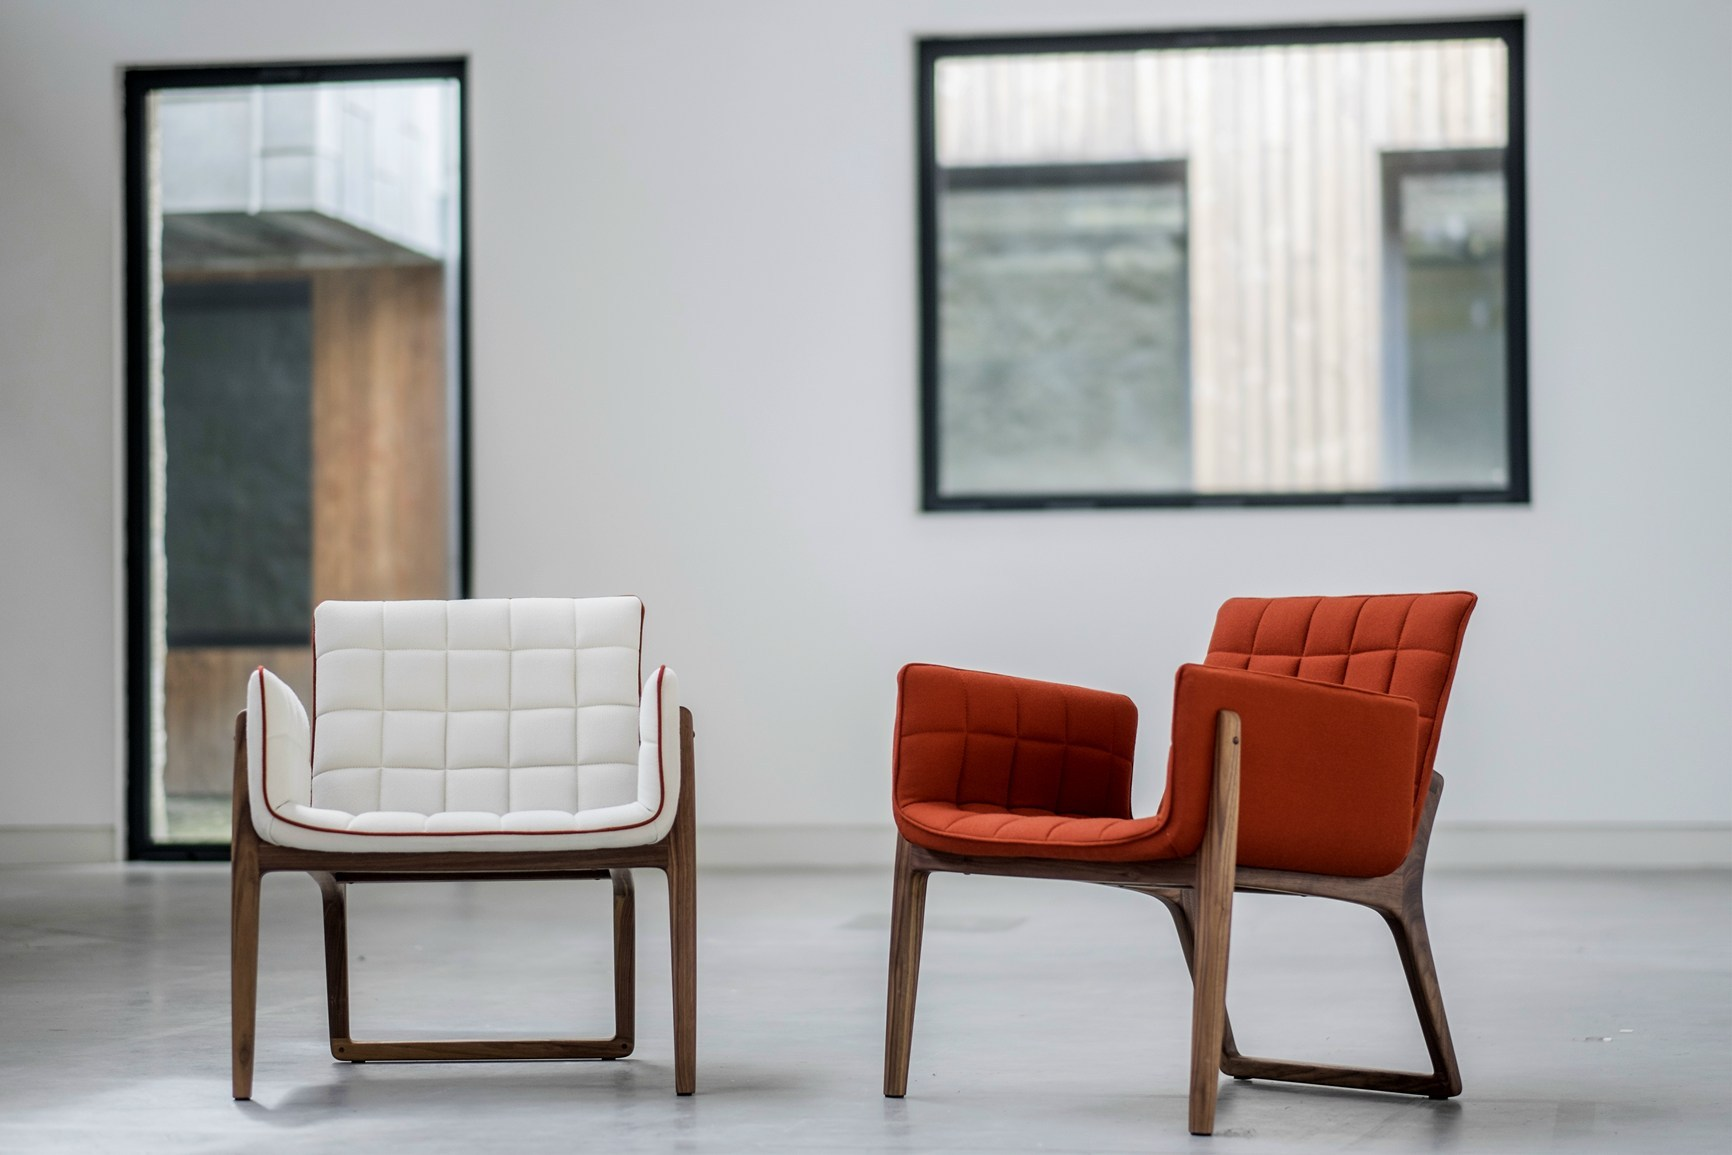 Mandarine Armchairs by Claudia & Harry Washington for Two.Six